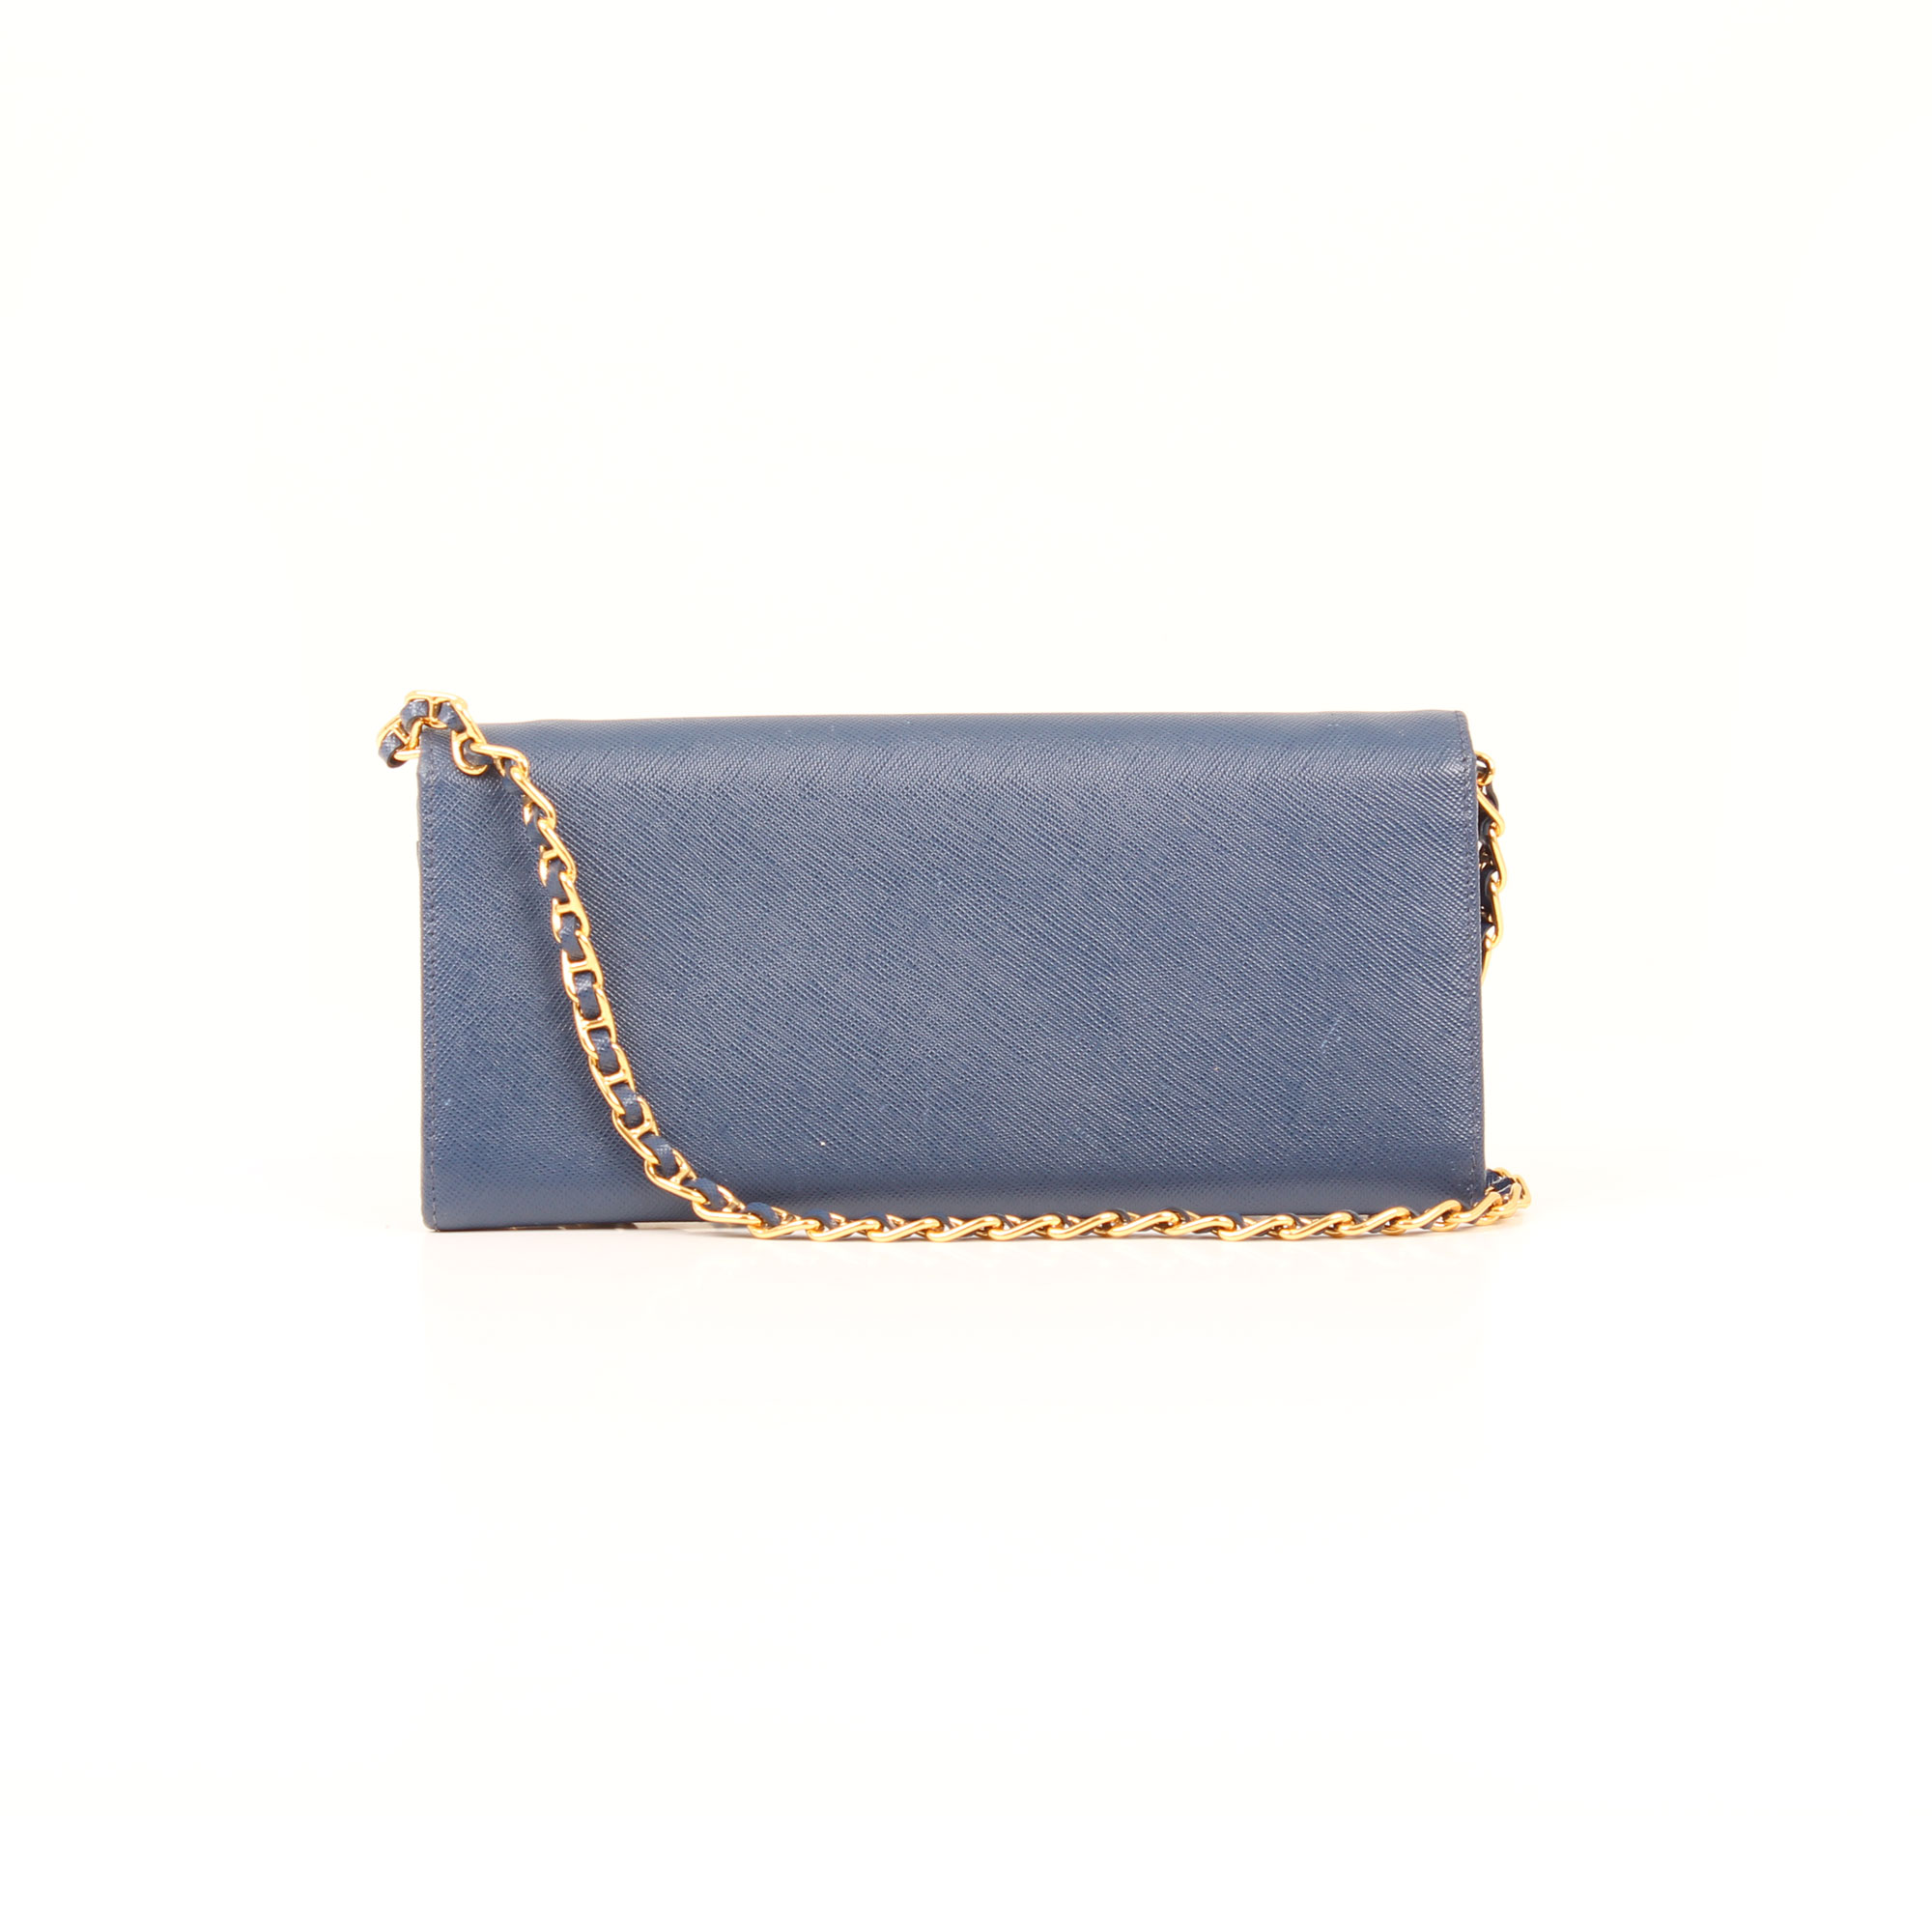 bolso-prada-wallet-on-chain-saffiano-metal-bluette-azul-trasera